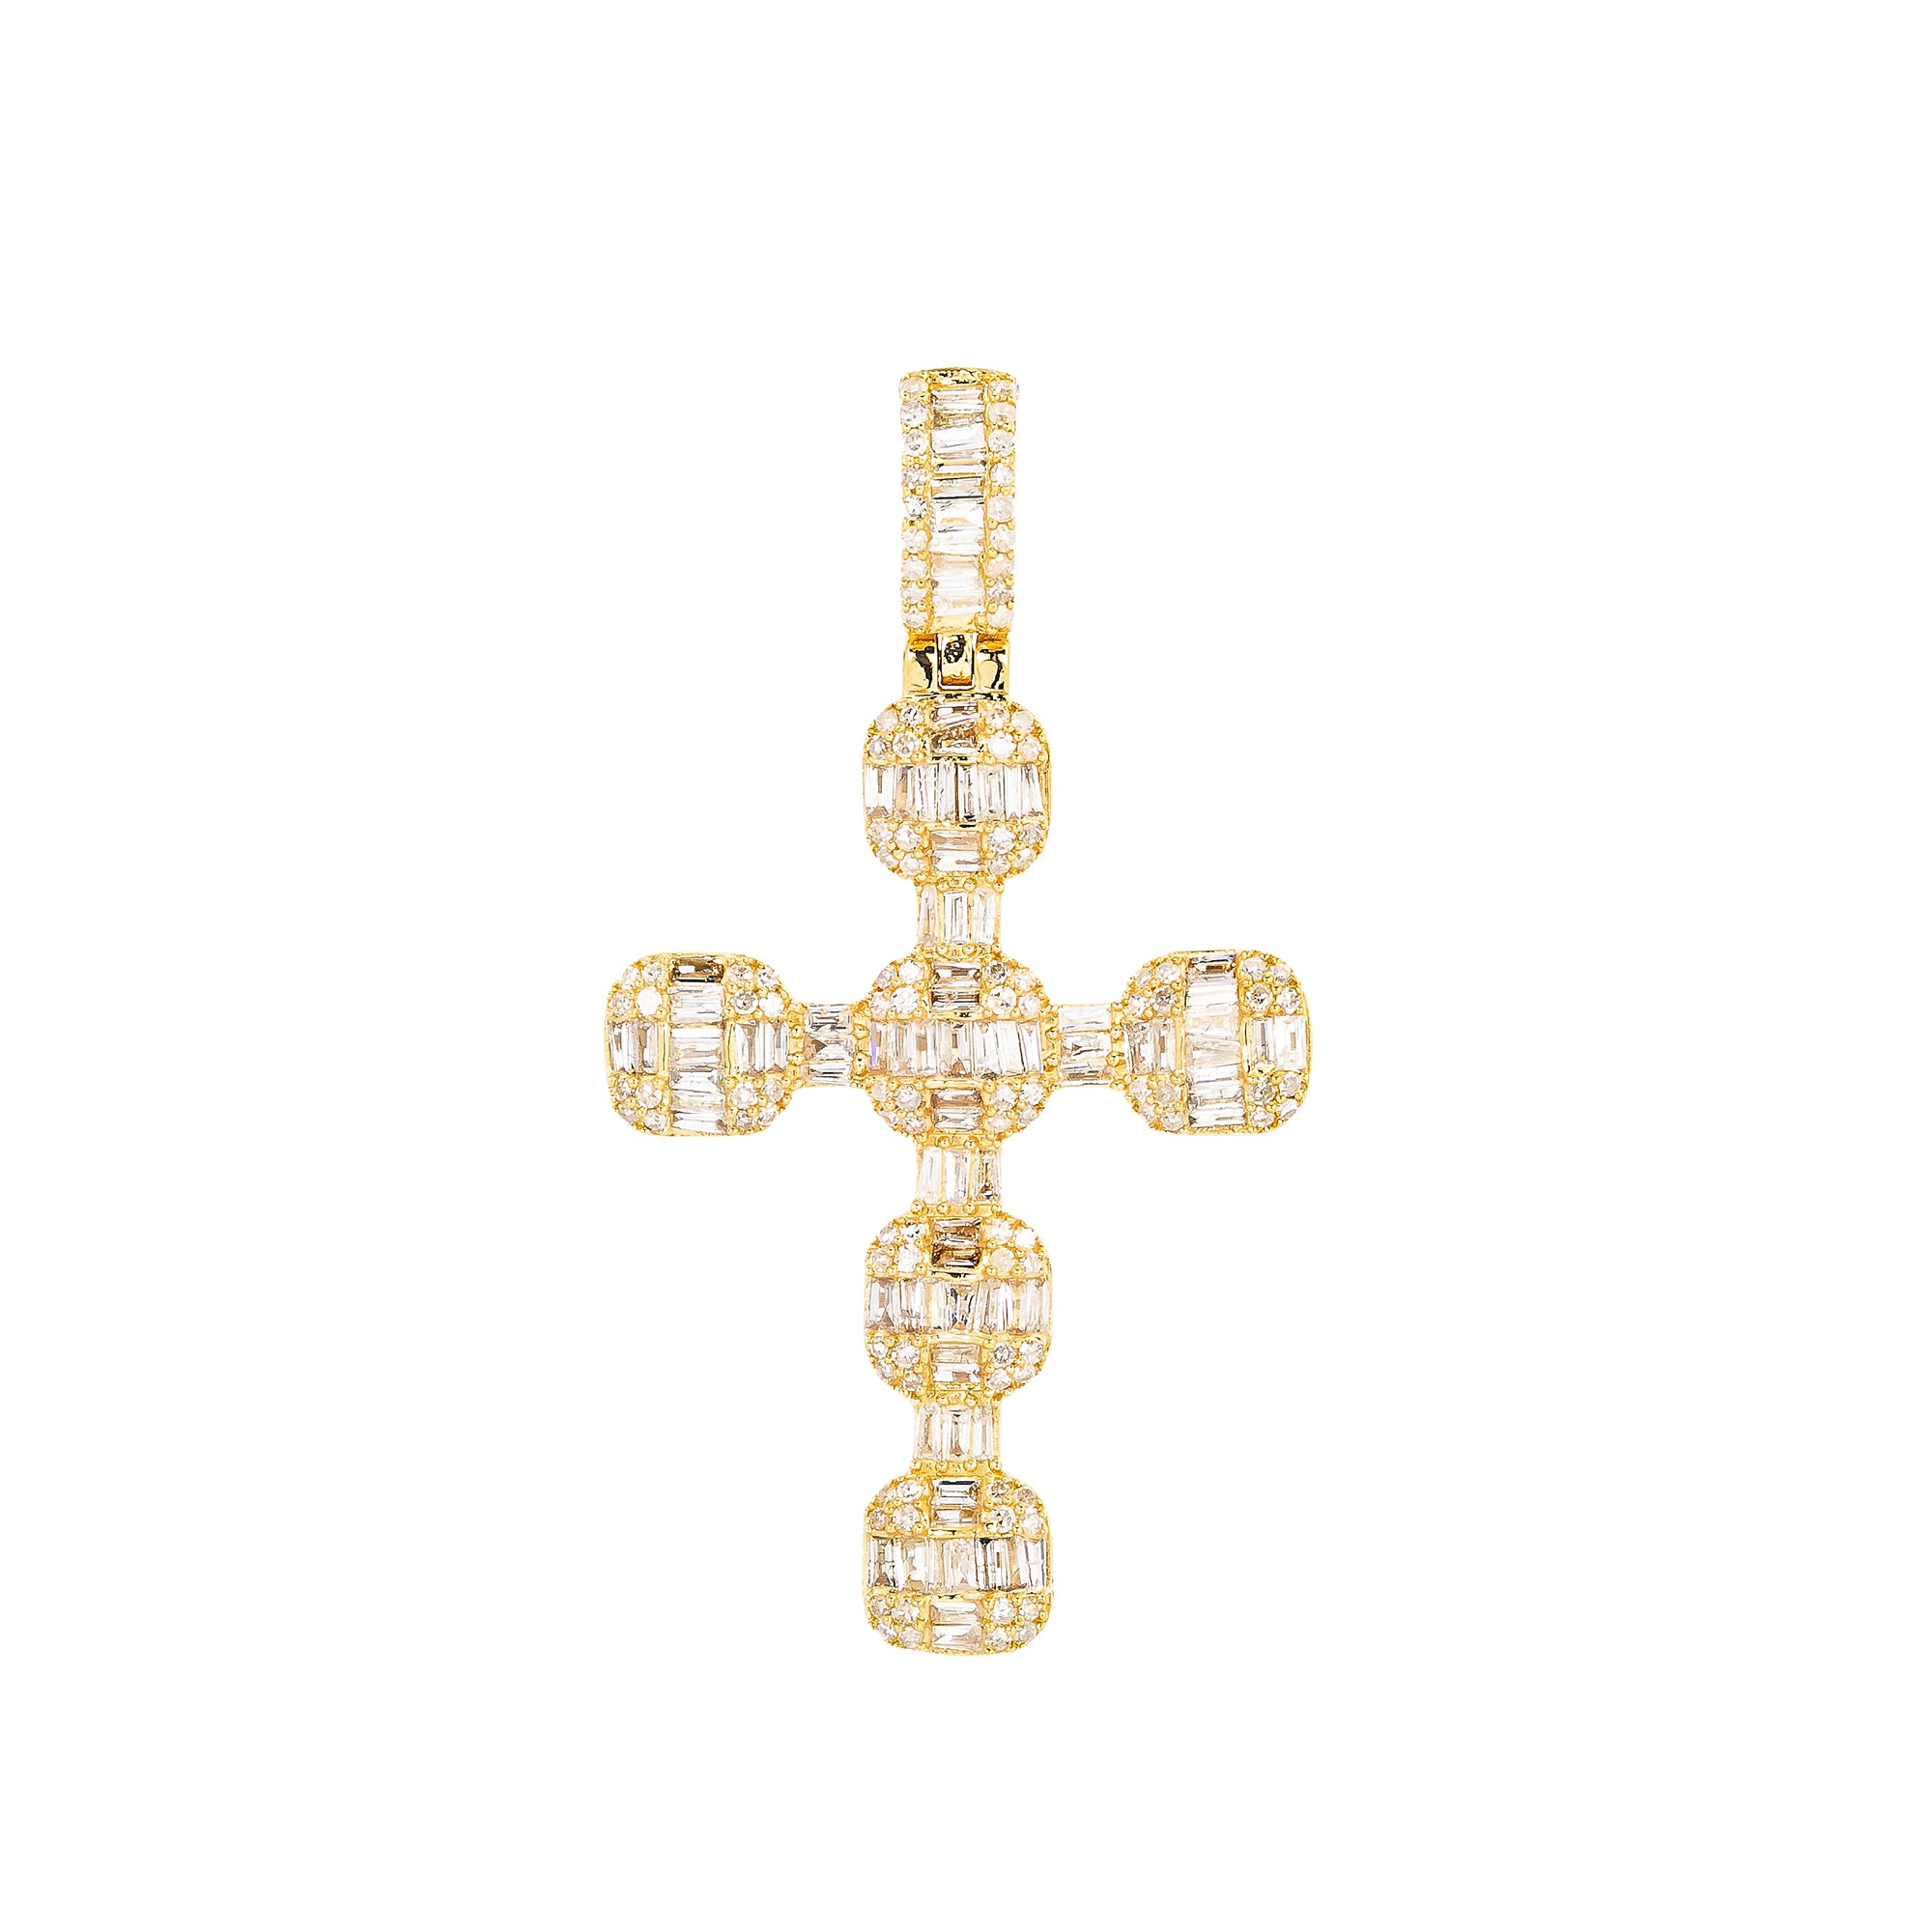 Unisex 14K Yellow Gold Cross Pendant with 1.24 CT Diamonds